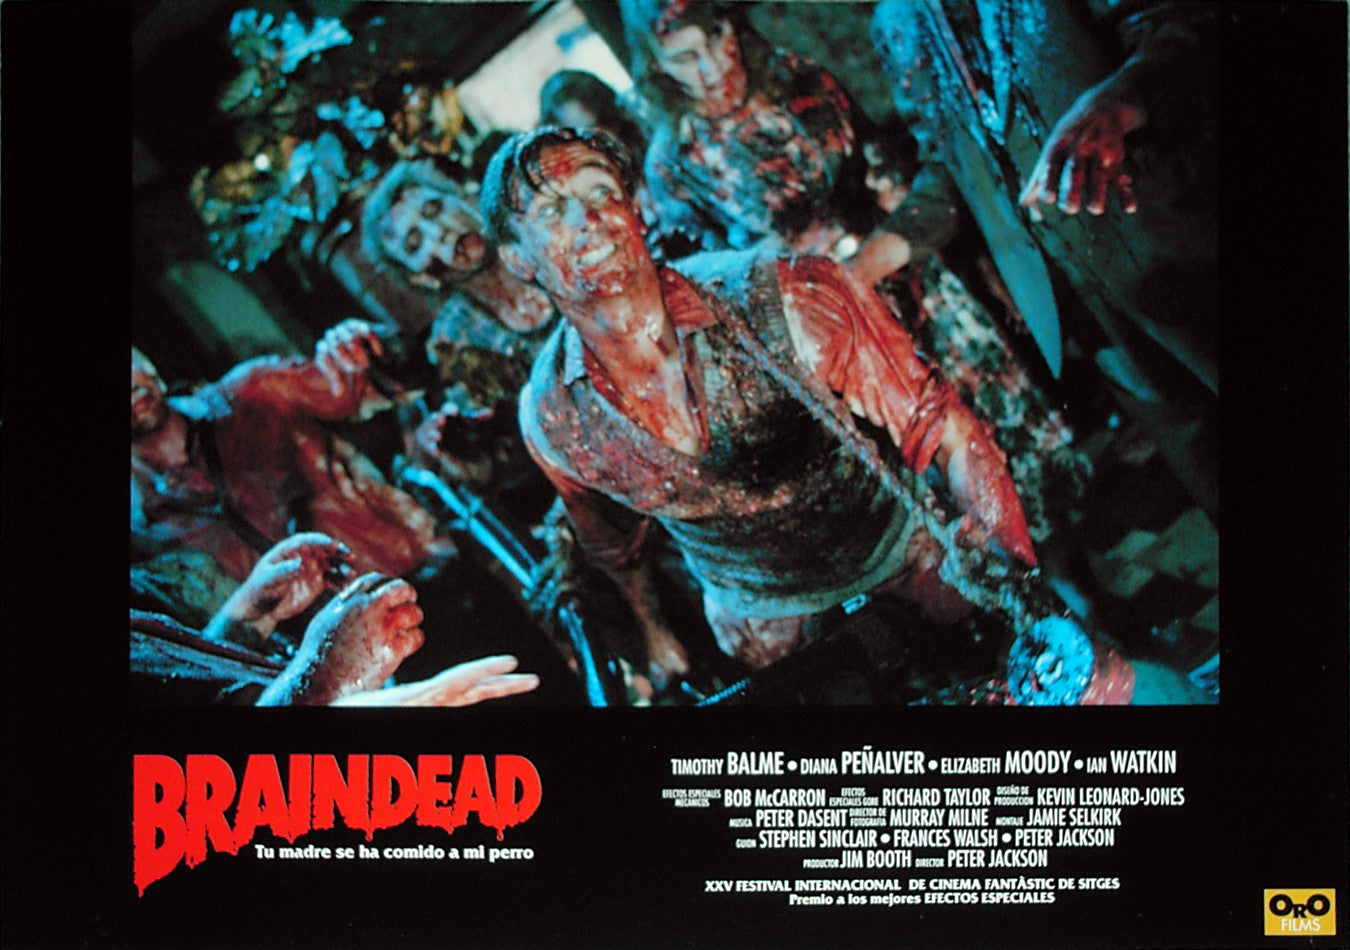 BRAINDEAD - Spanish lobby card v5